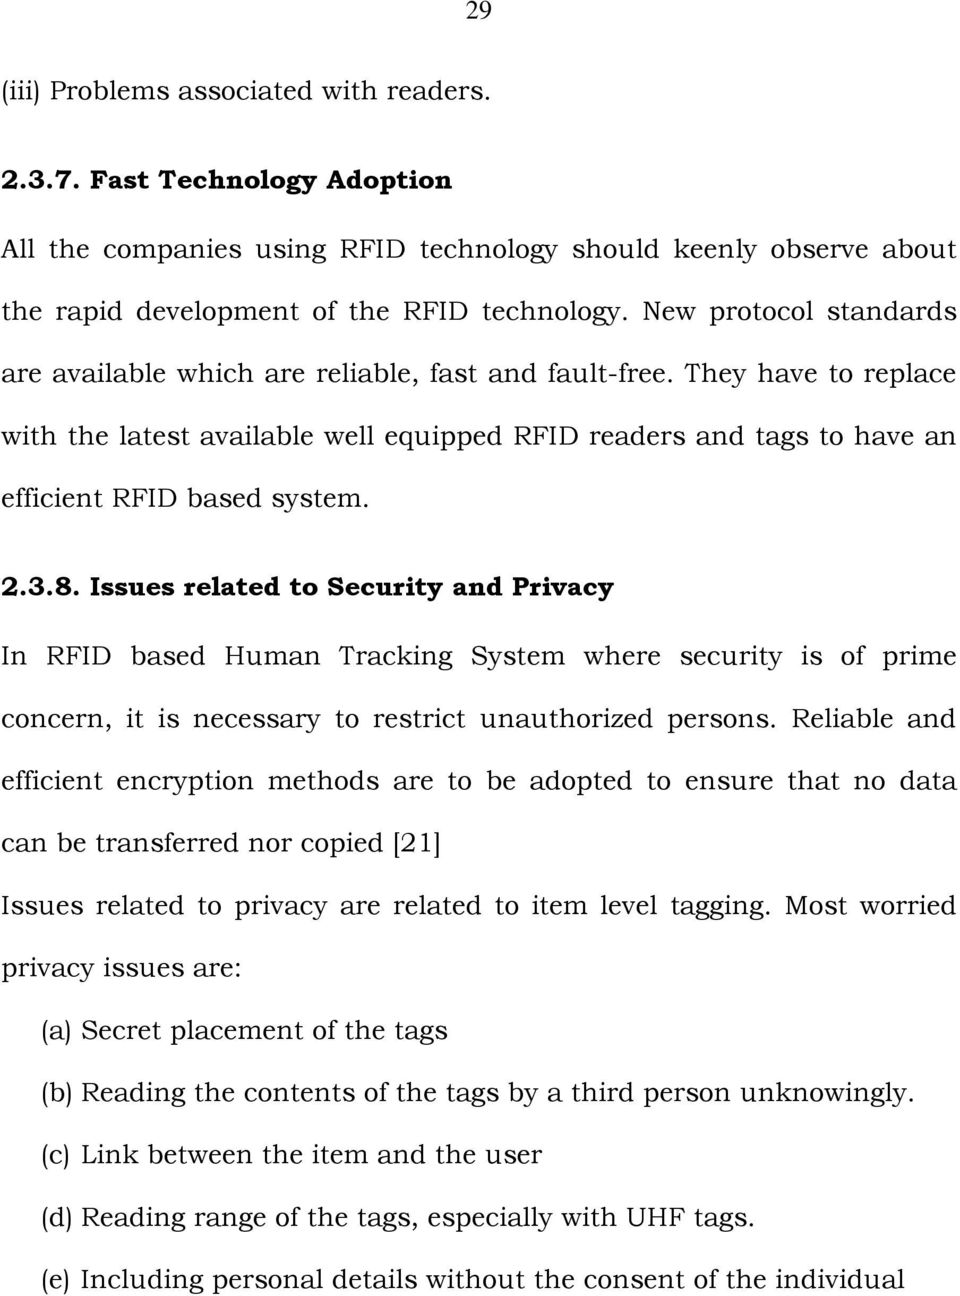 2.3.8. Issues related to Security and Privacy In RFID based Human Tracking System where security is of prime concern, it is necessary to restrict unauthorized persons.